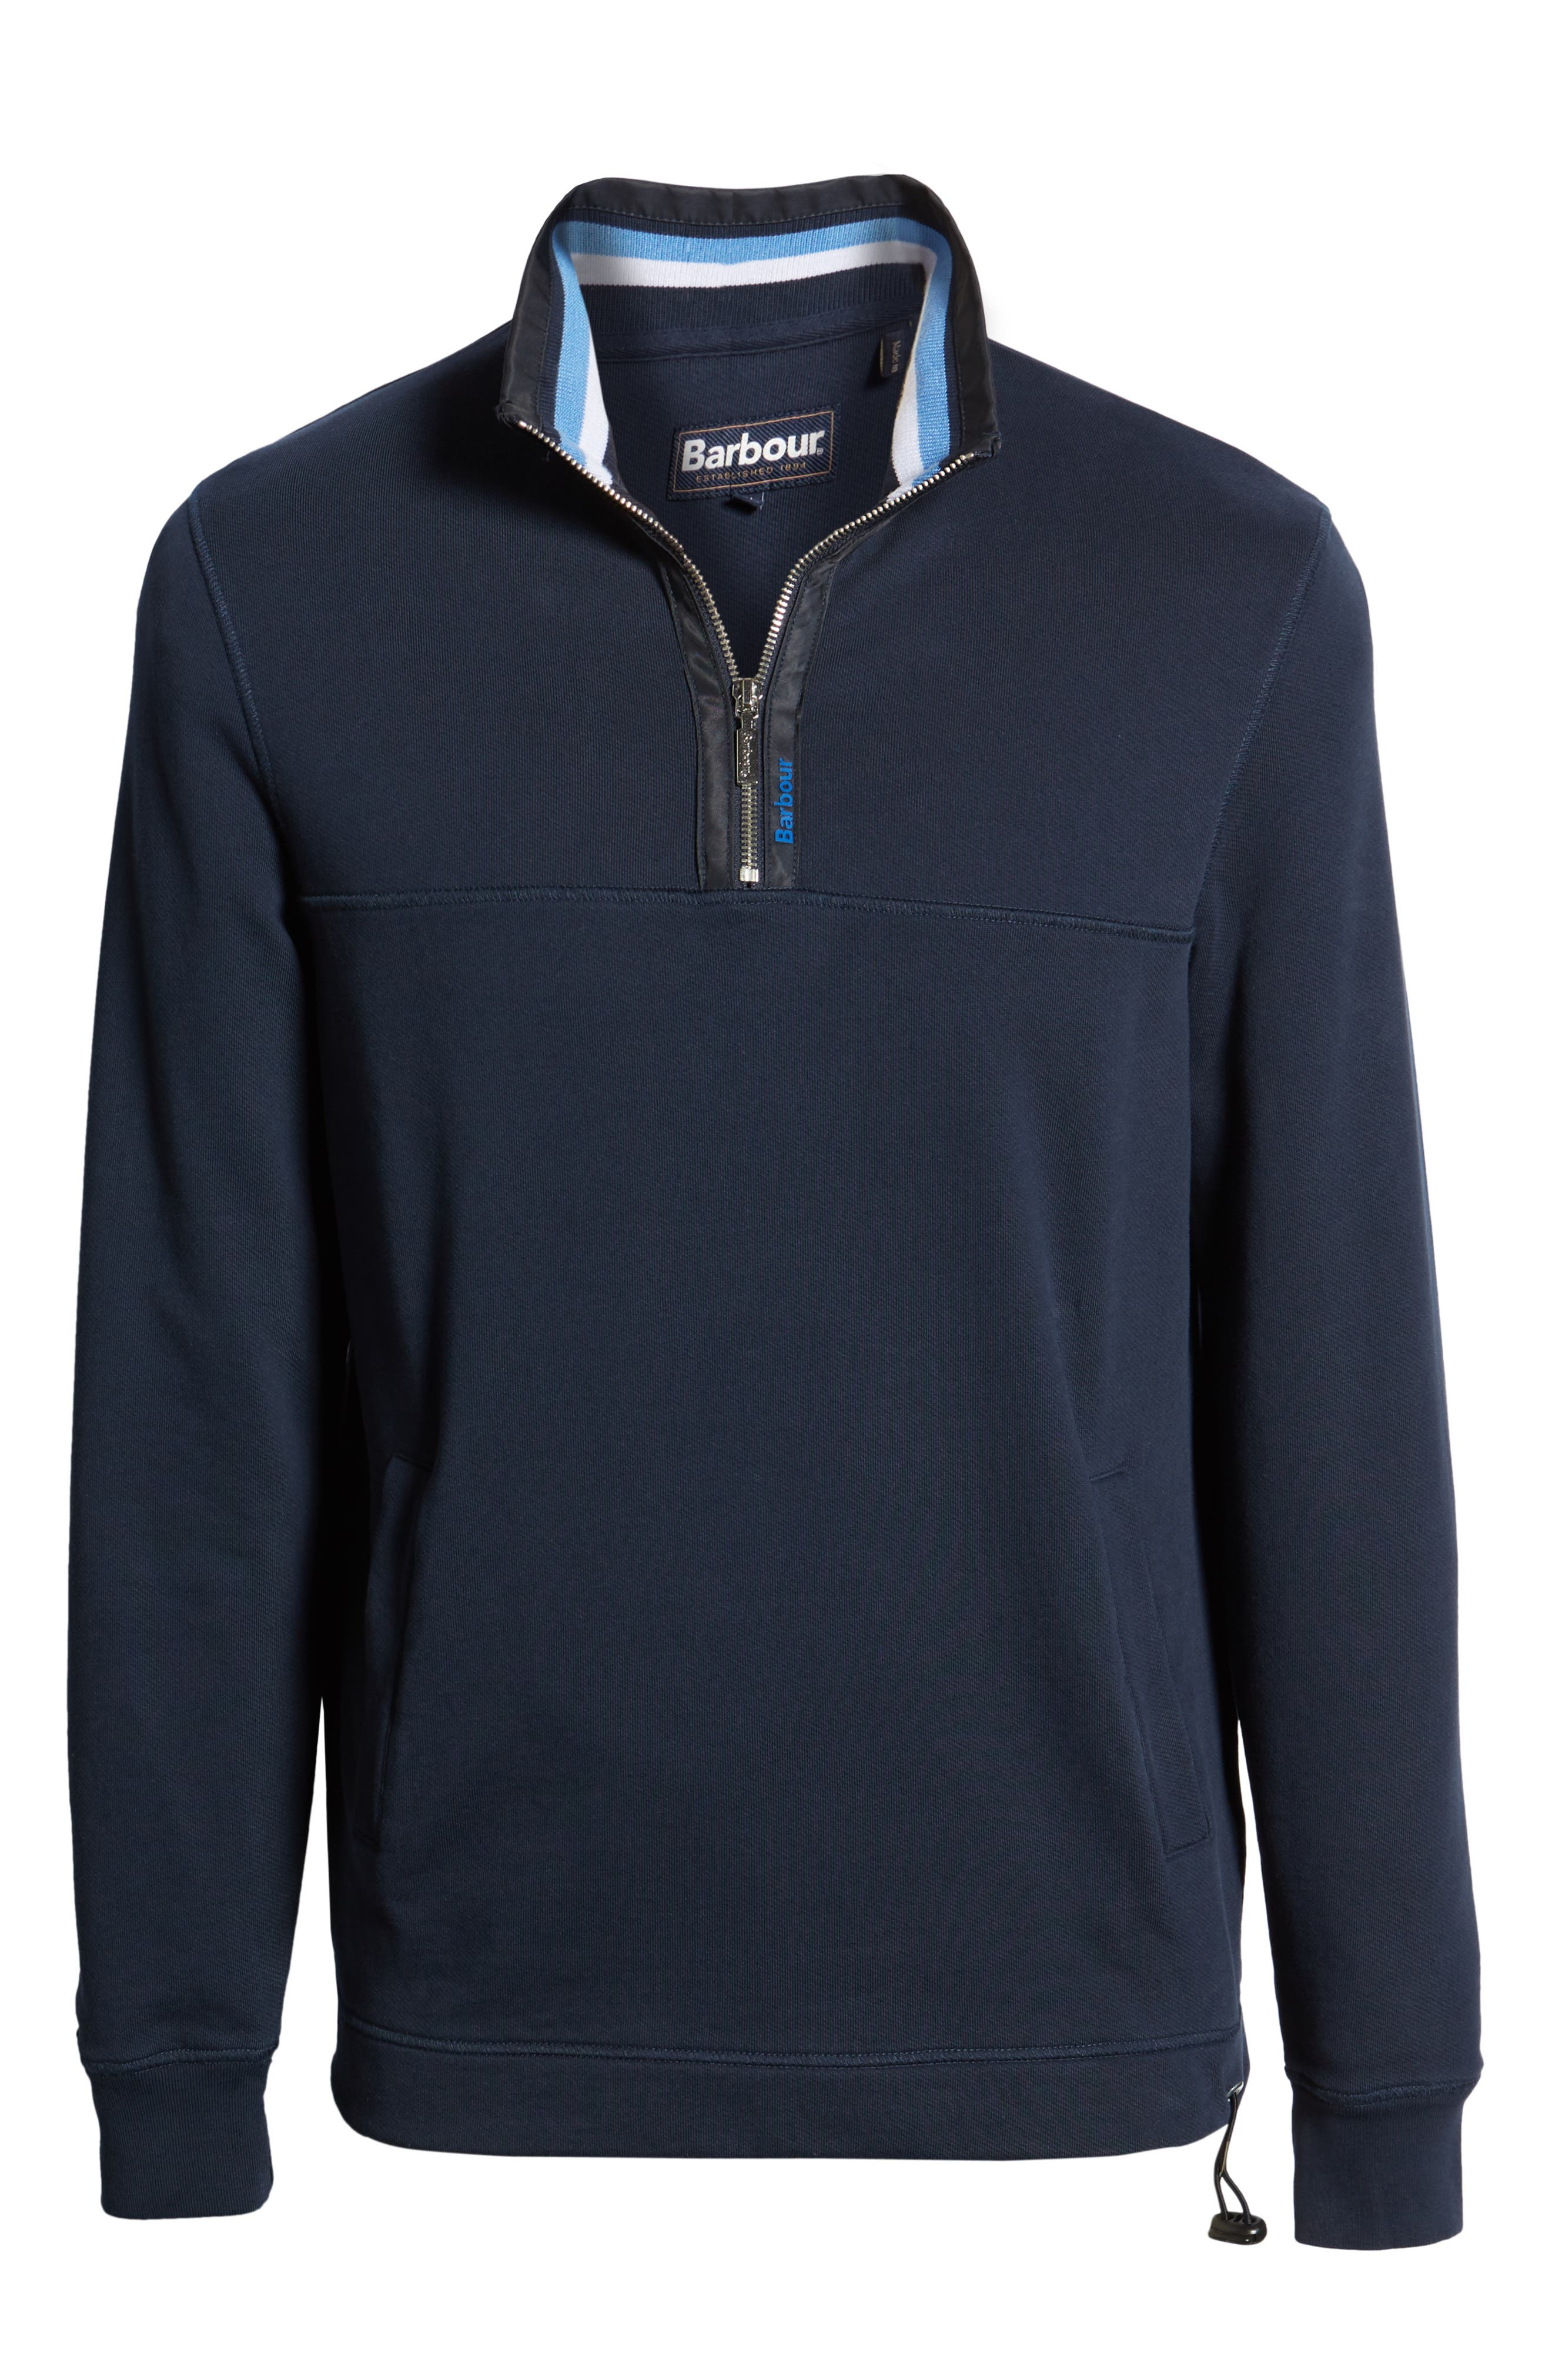 BARBOUR, Seward Half Zip Pullover, Alternate thumbnail 7, color, NAVY